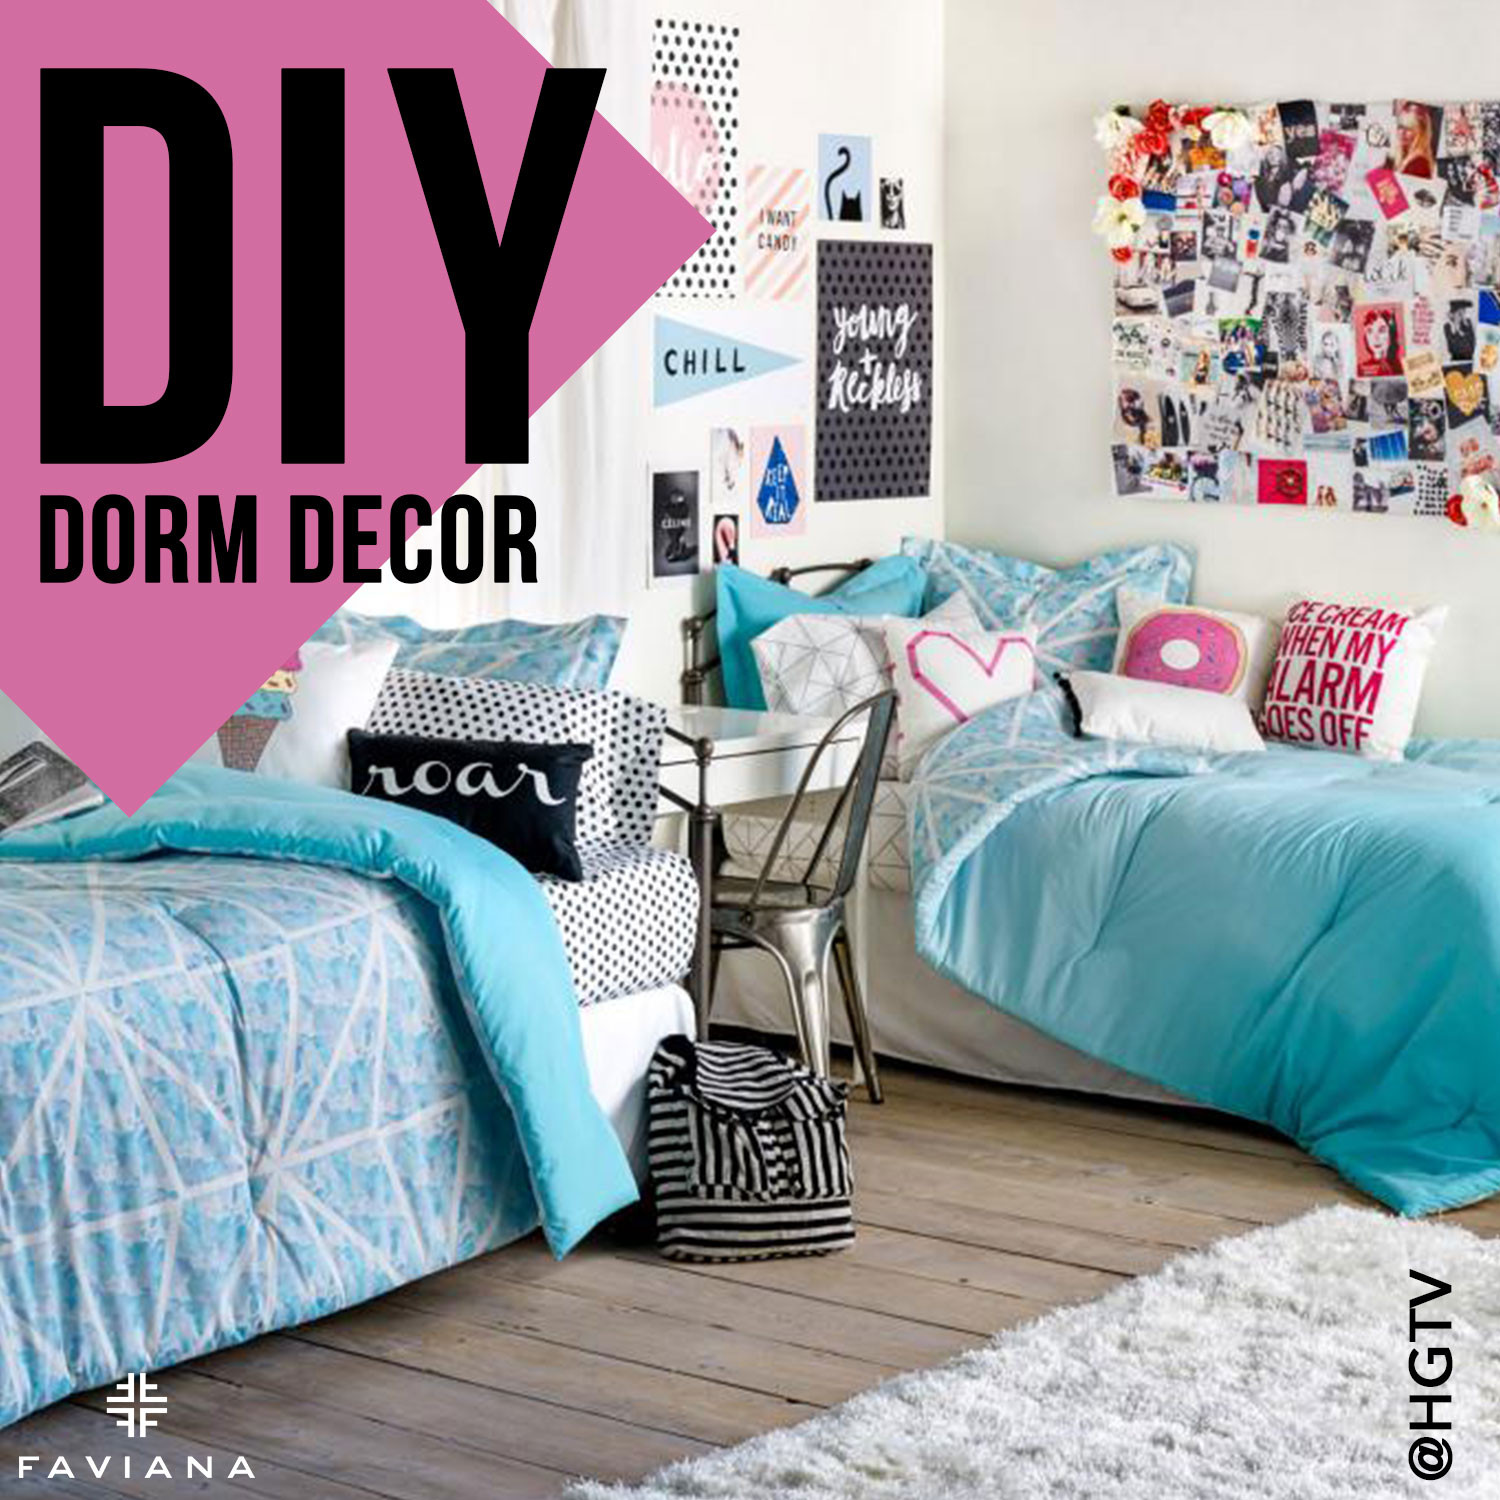 Best ideas about DIY Dorm Room Decorating . Save or Pin DIY Dorm Decor Now.